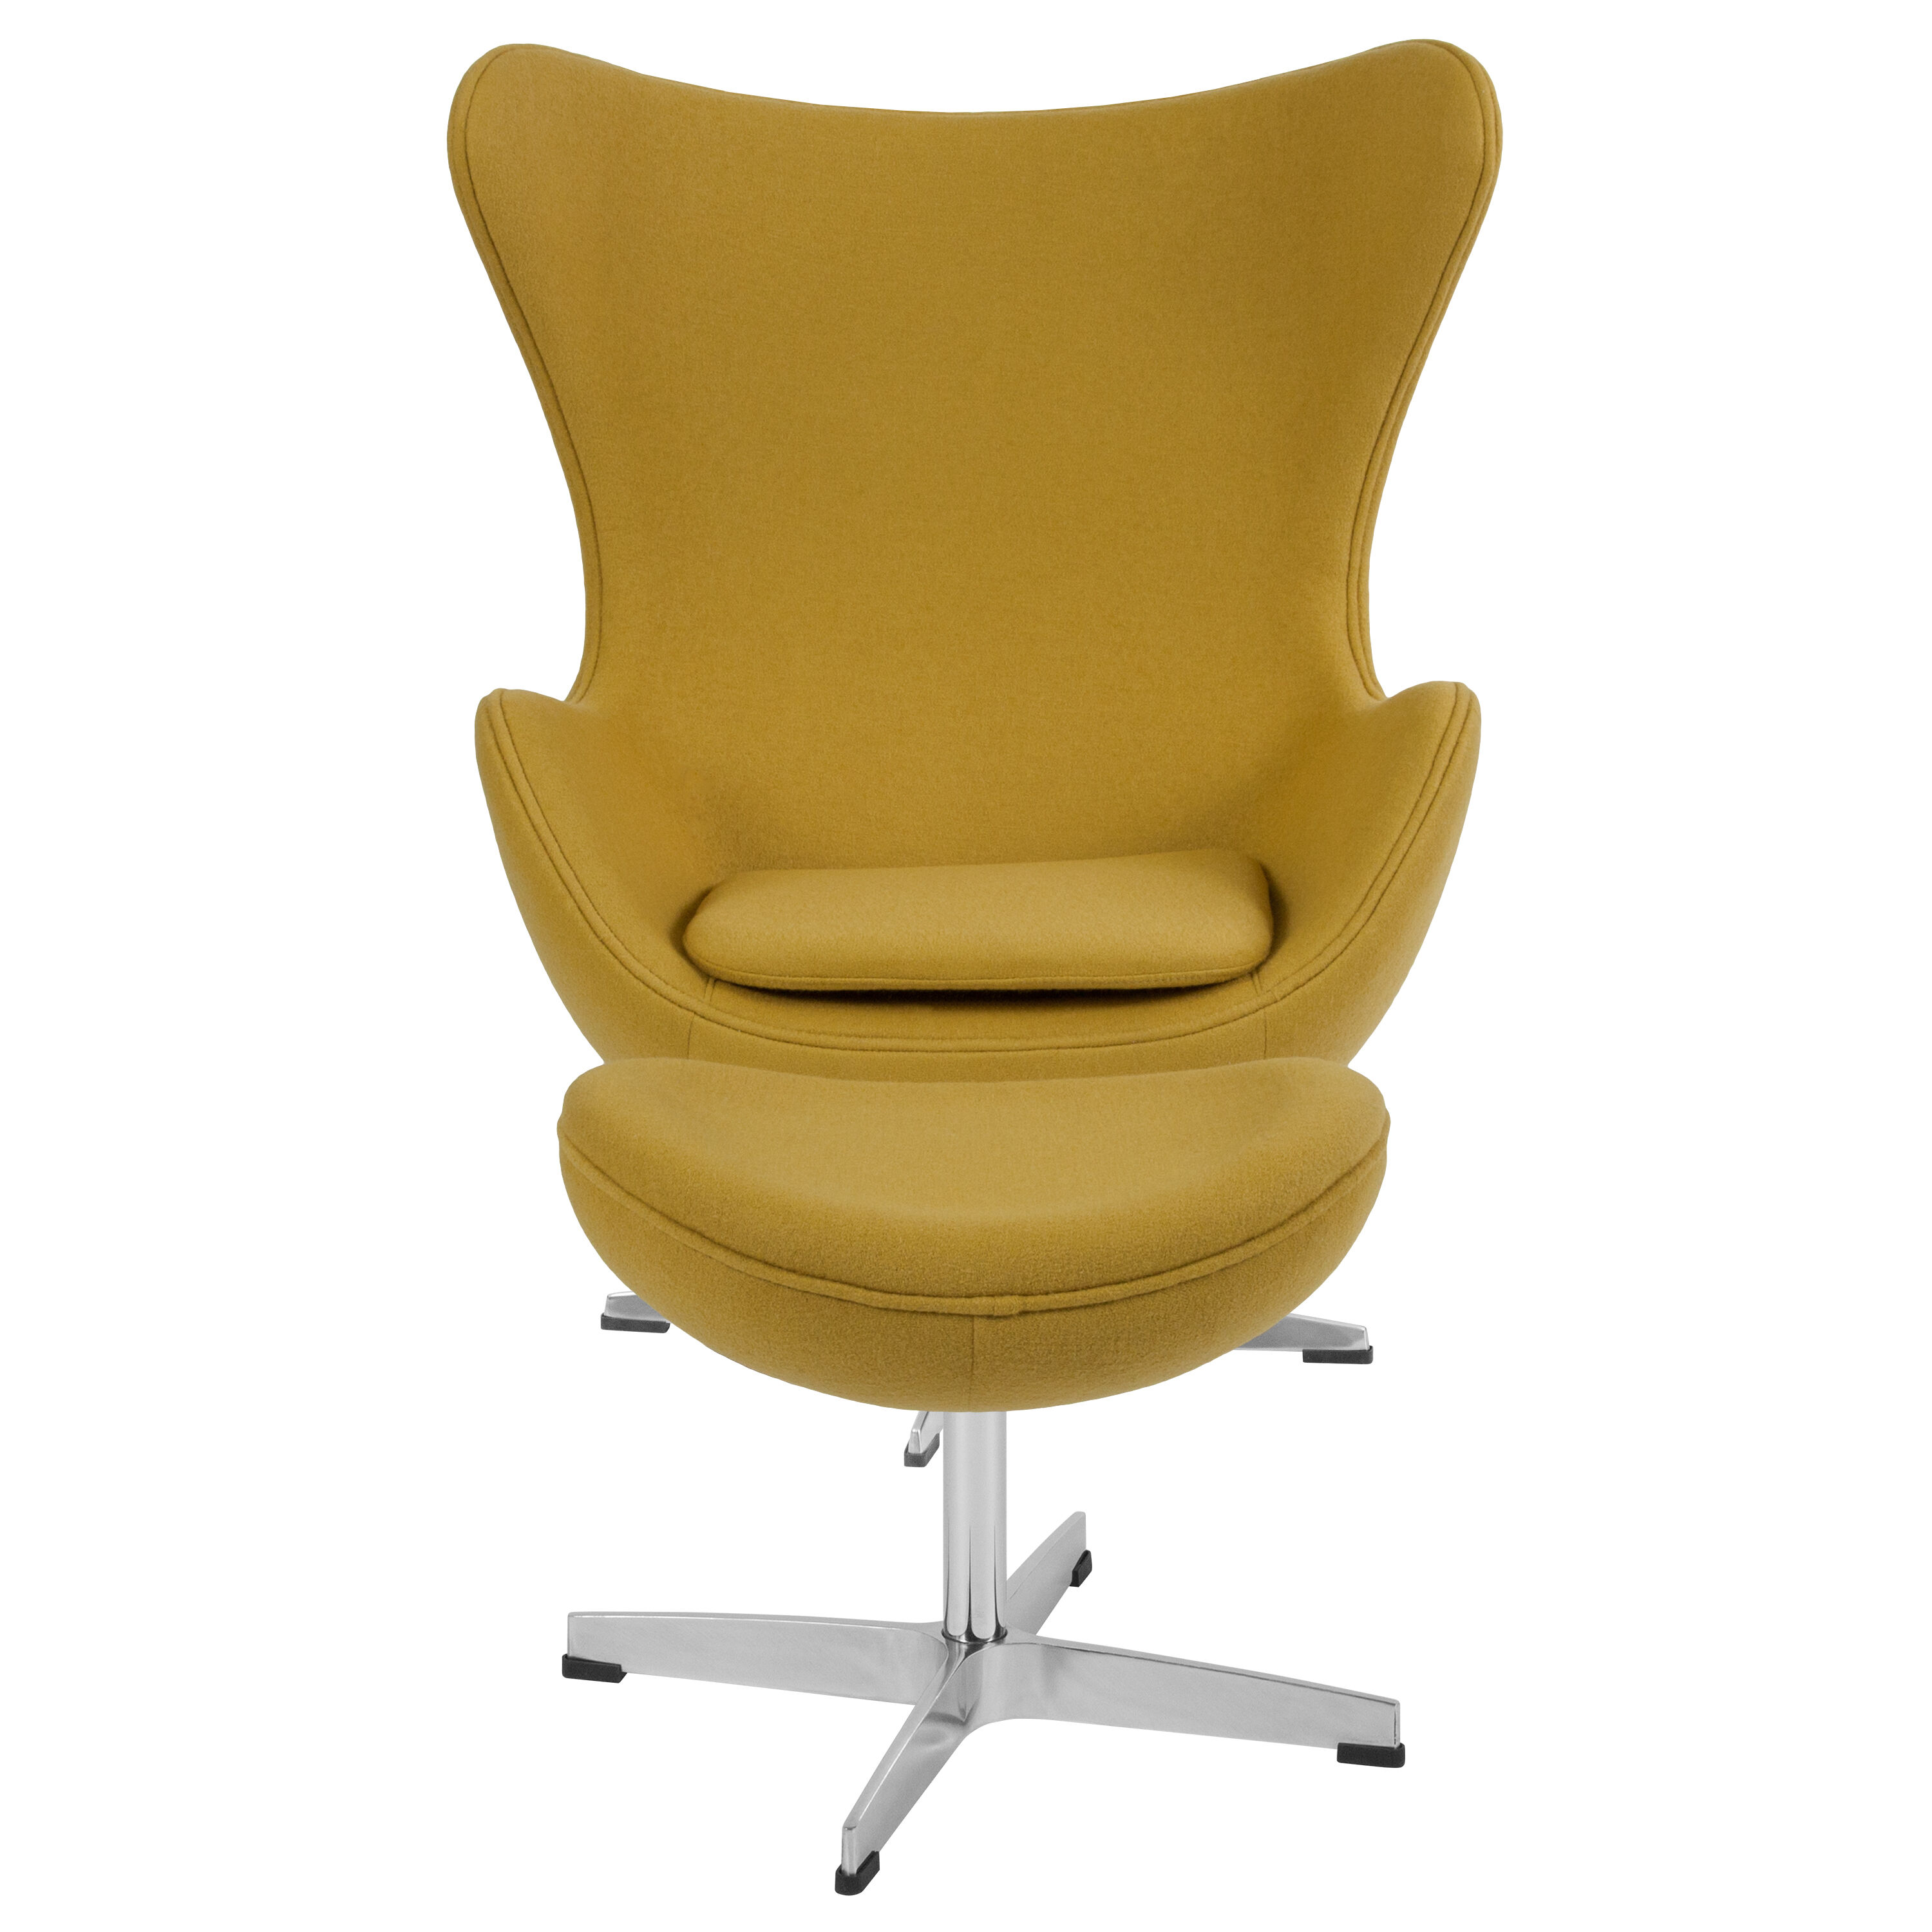 Egg Chair For Sale Citron Wool Fabric Egg Chair With Tilt Lock Mechanism And Ottoman